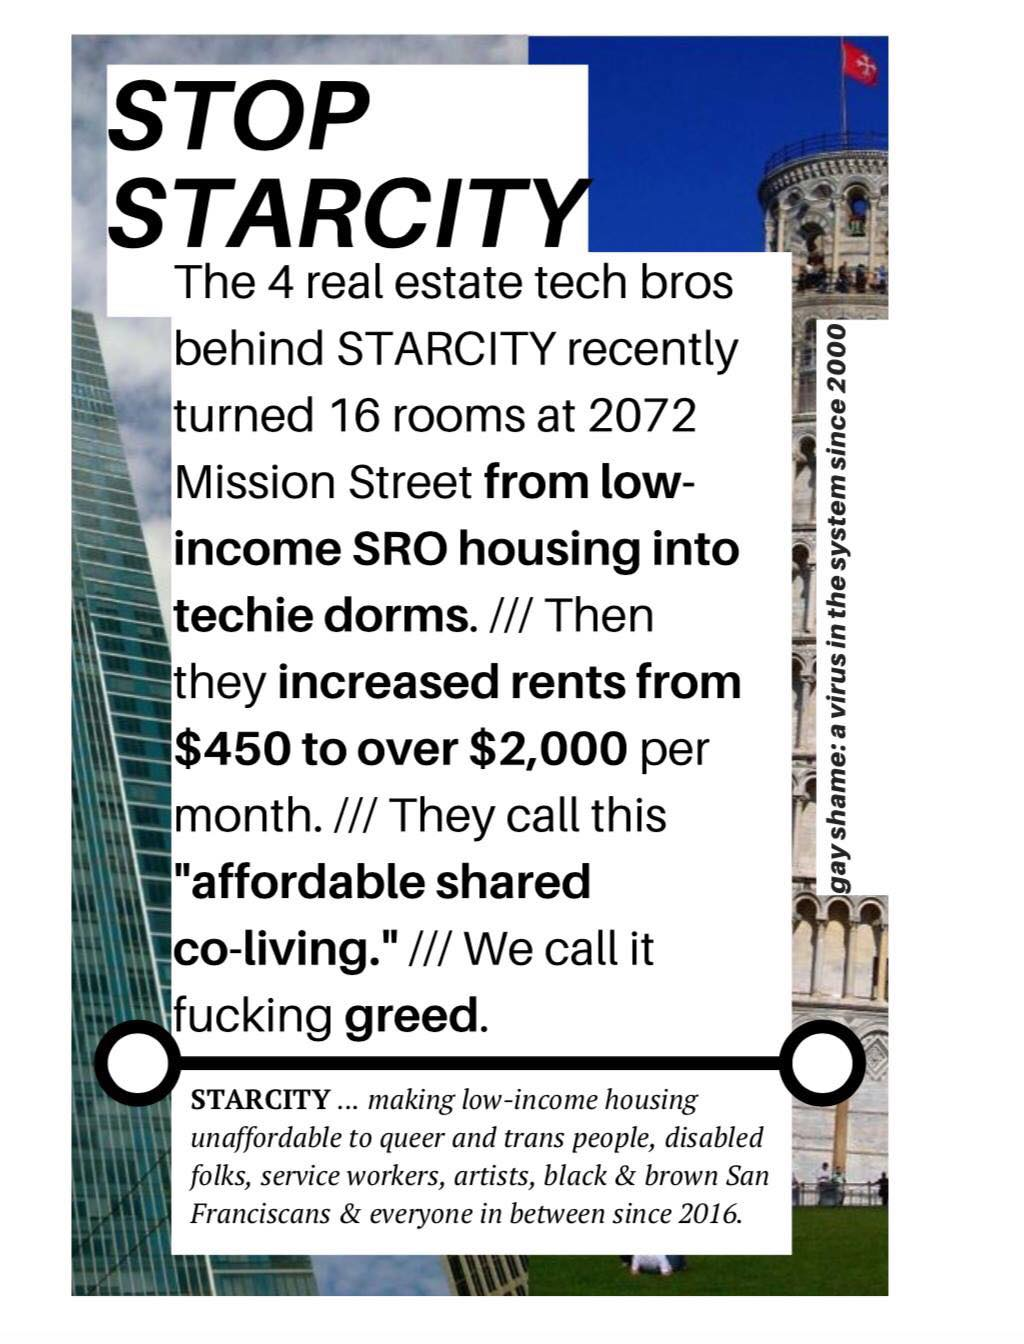 flyer reads: stop starcity --- the 4 real estate tech bros behind starcity recently turned 16 rooms at 2072 mission street from low-income sro housing into techie dorms. /// then they increased rents from $450 to over $2,000 per month //// they call this affordable shared co-living. /// we call it fucking greed.